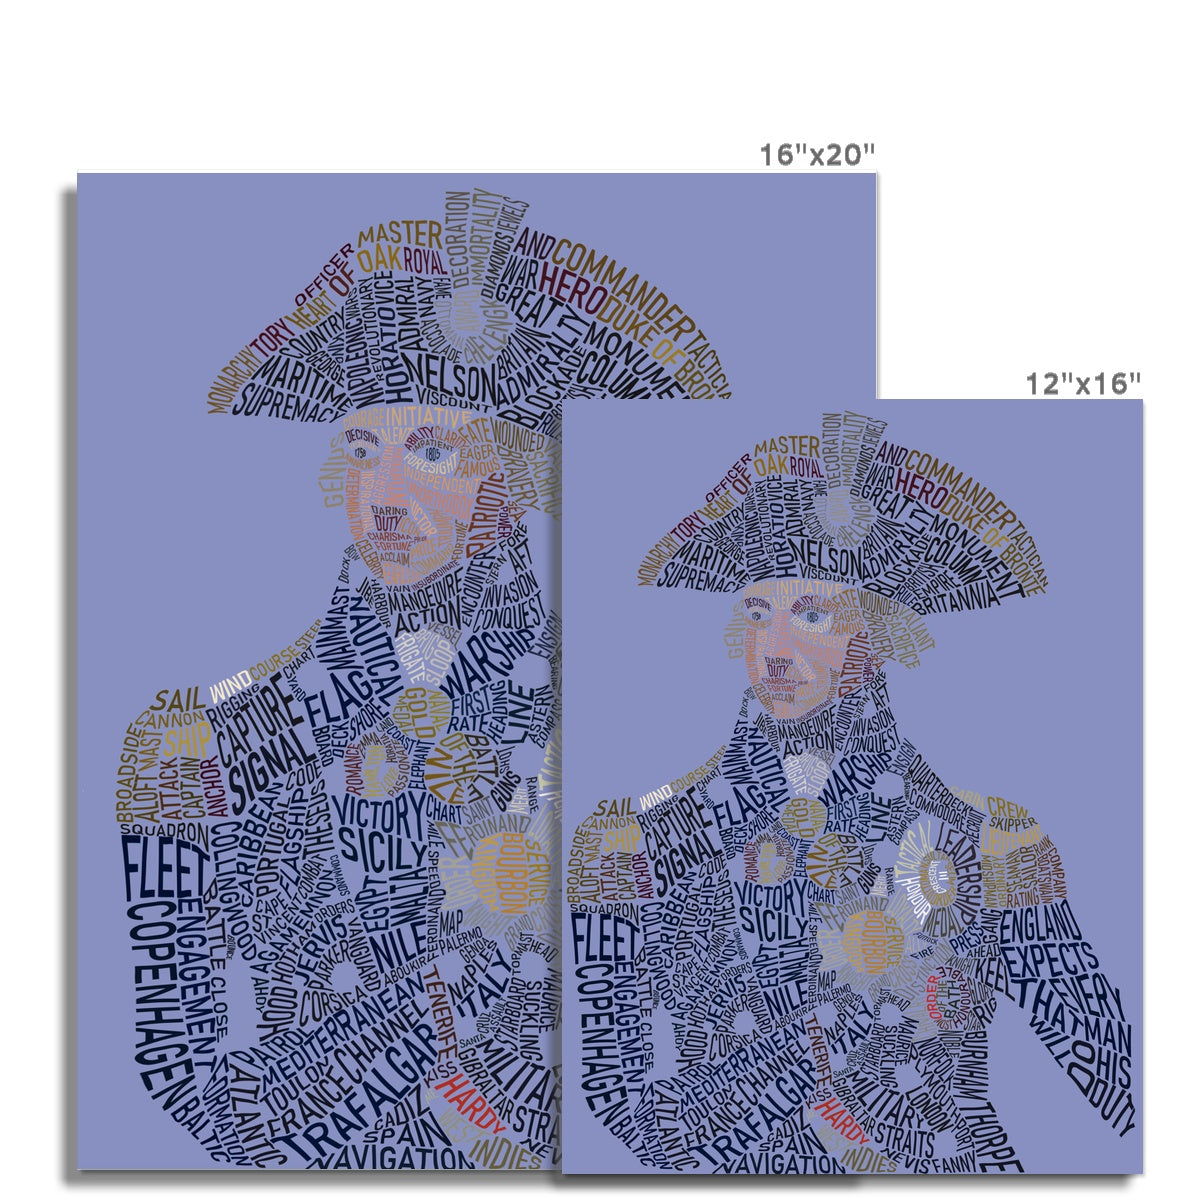 Admiral Horatio Nelson Text Art Print - Napoleonic Impressions